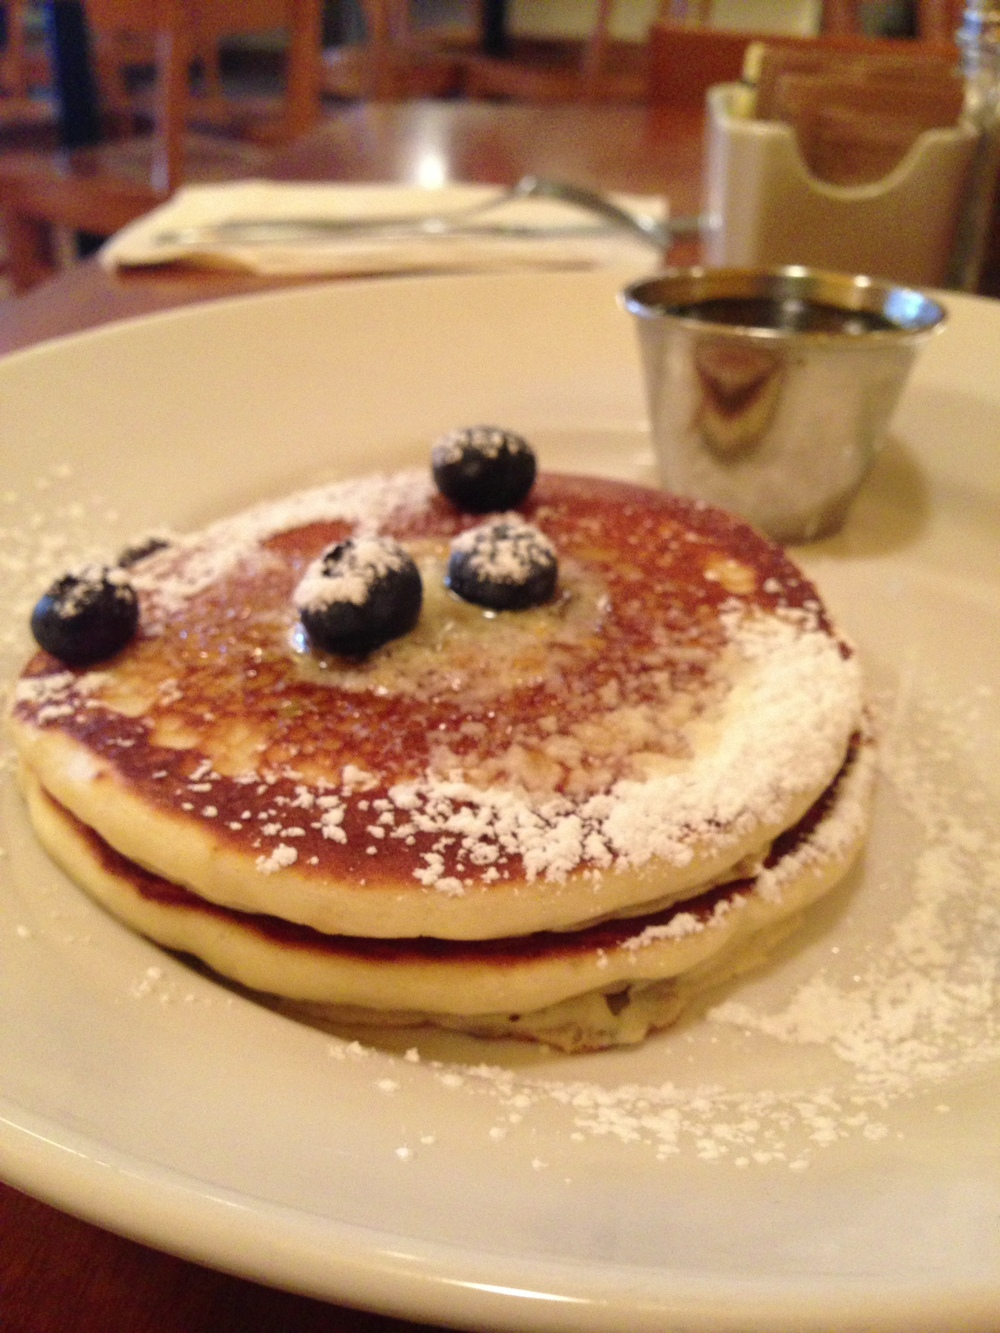 Short stack of blueberry pancakes